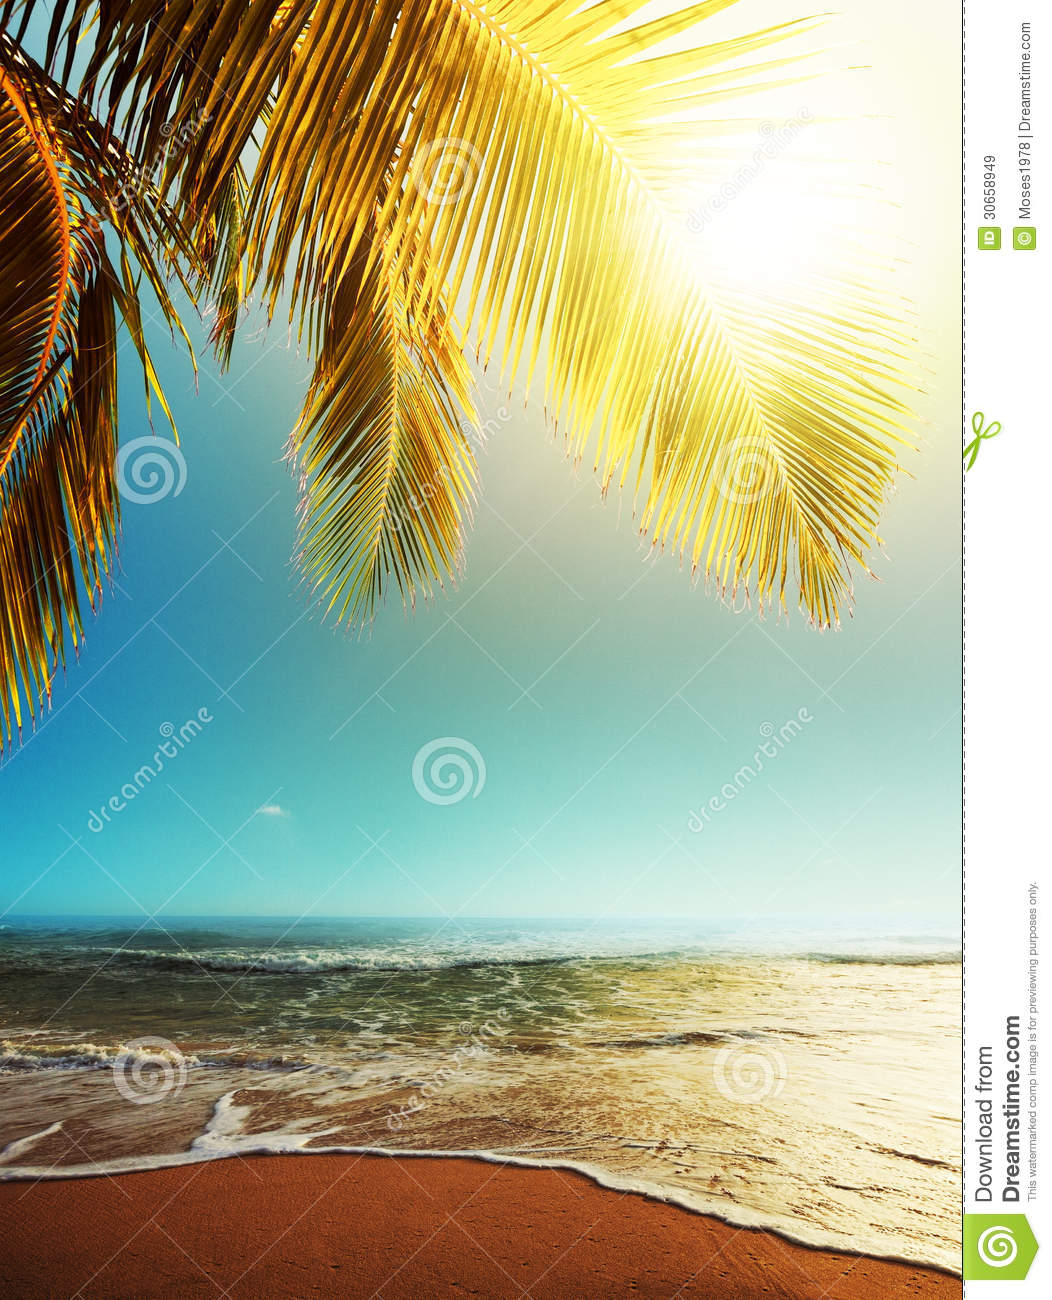 Tropical Beach And Peaceful Ocean: Tropical Beach Stock Image. Image Of Sunset, Peaceful